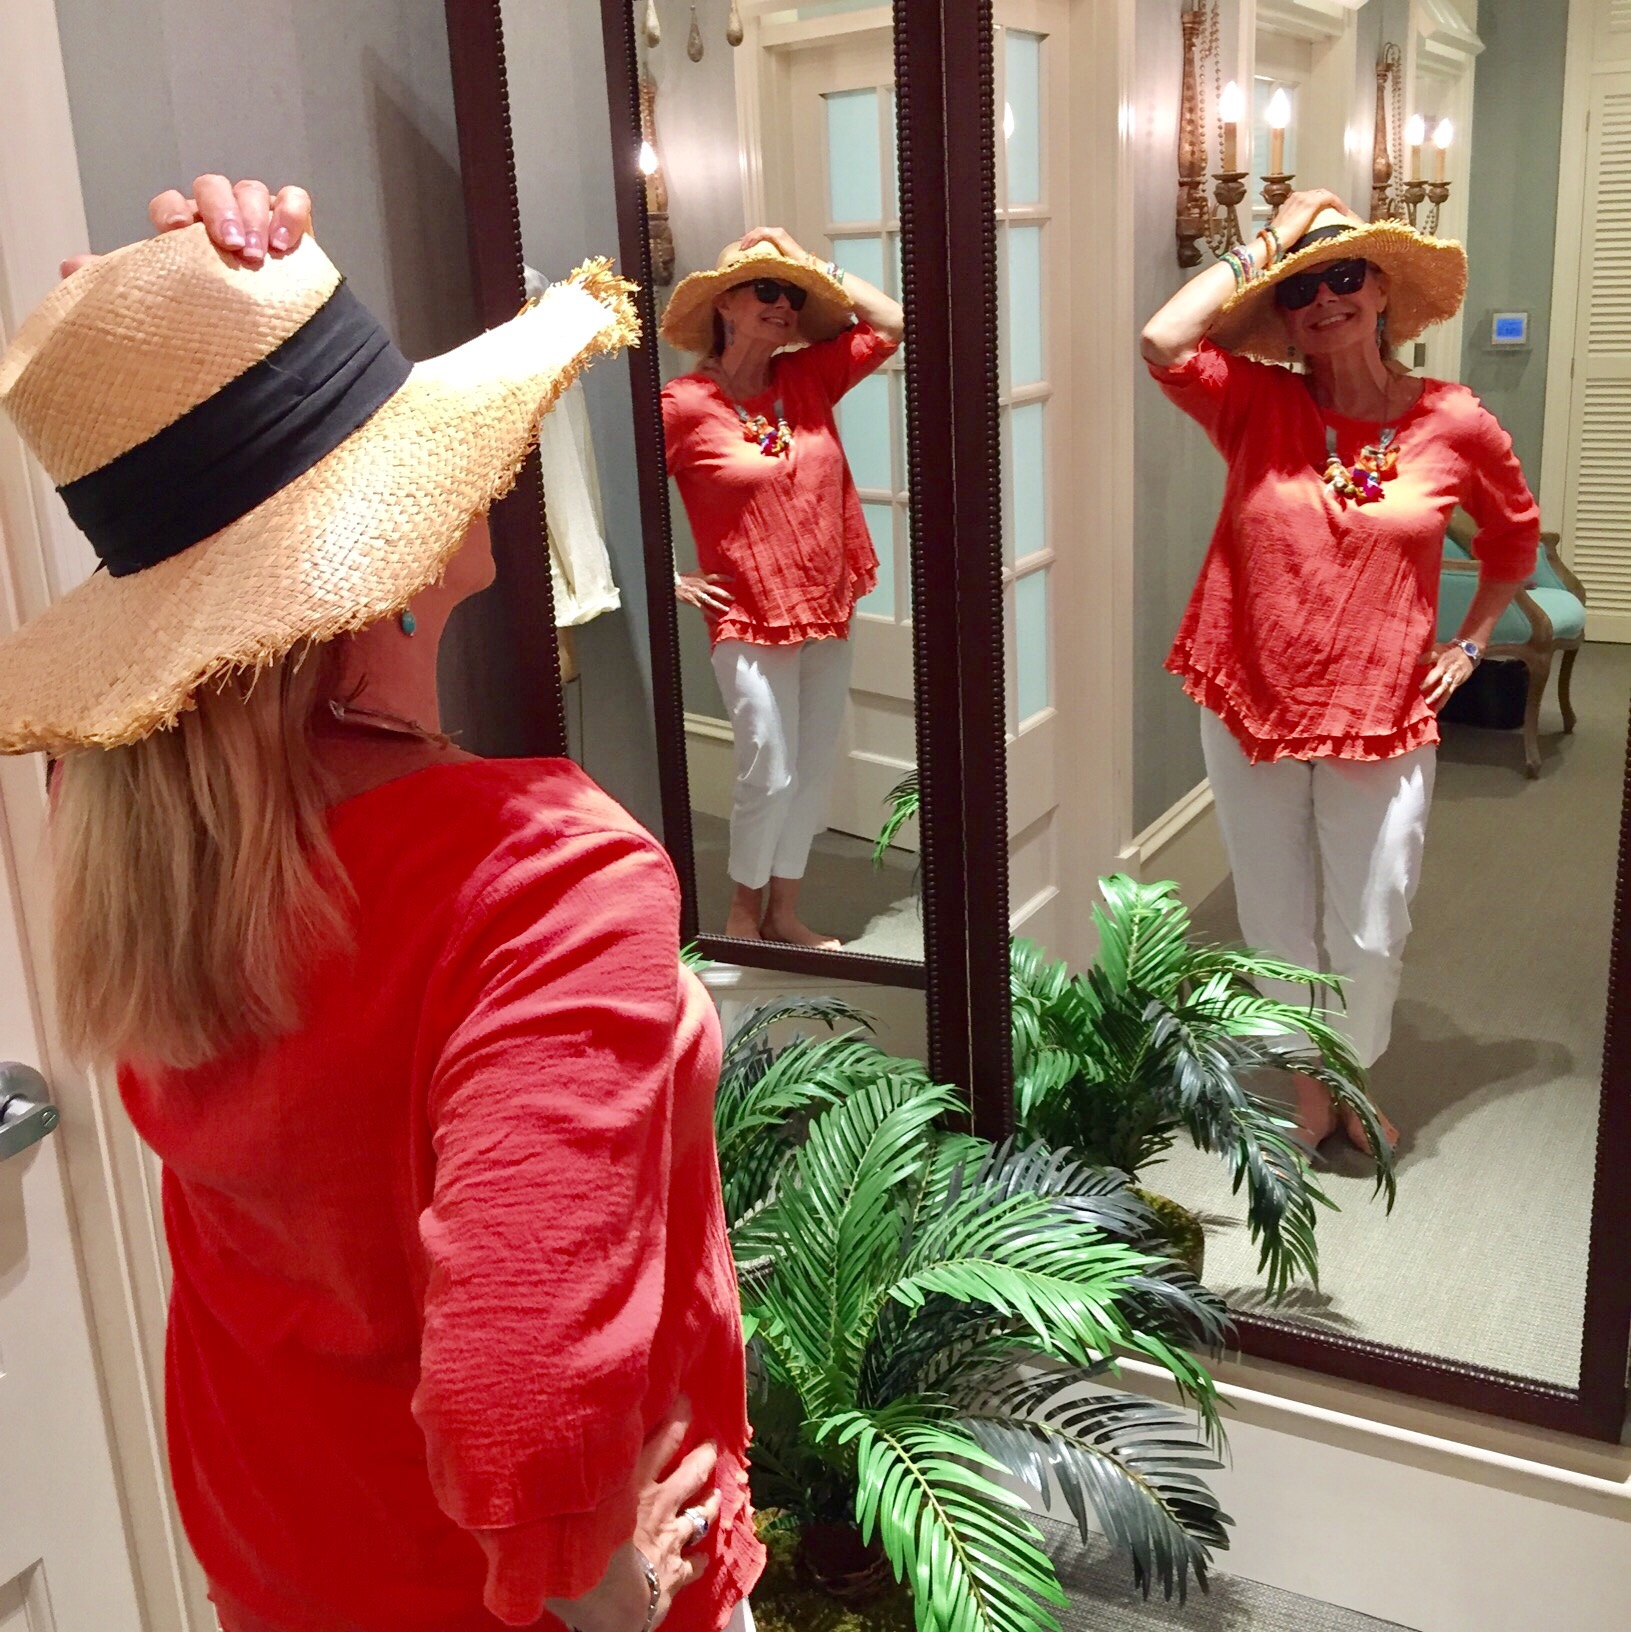 Fashion Over 50: The Beach Bum